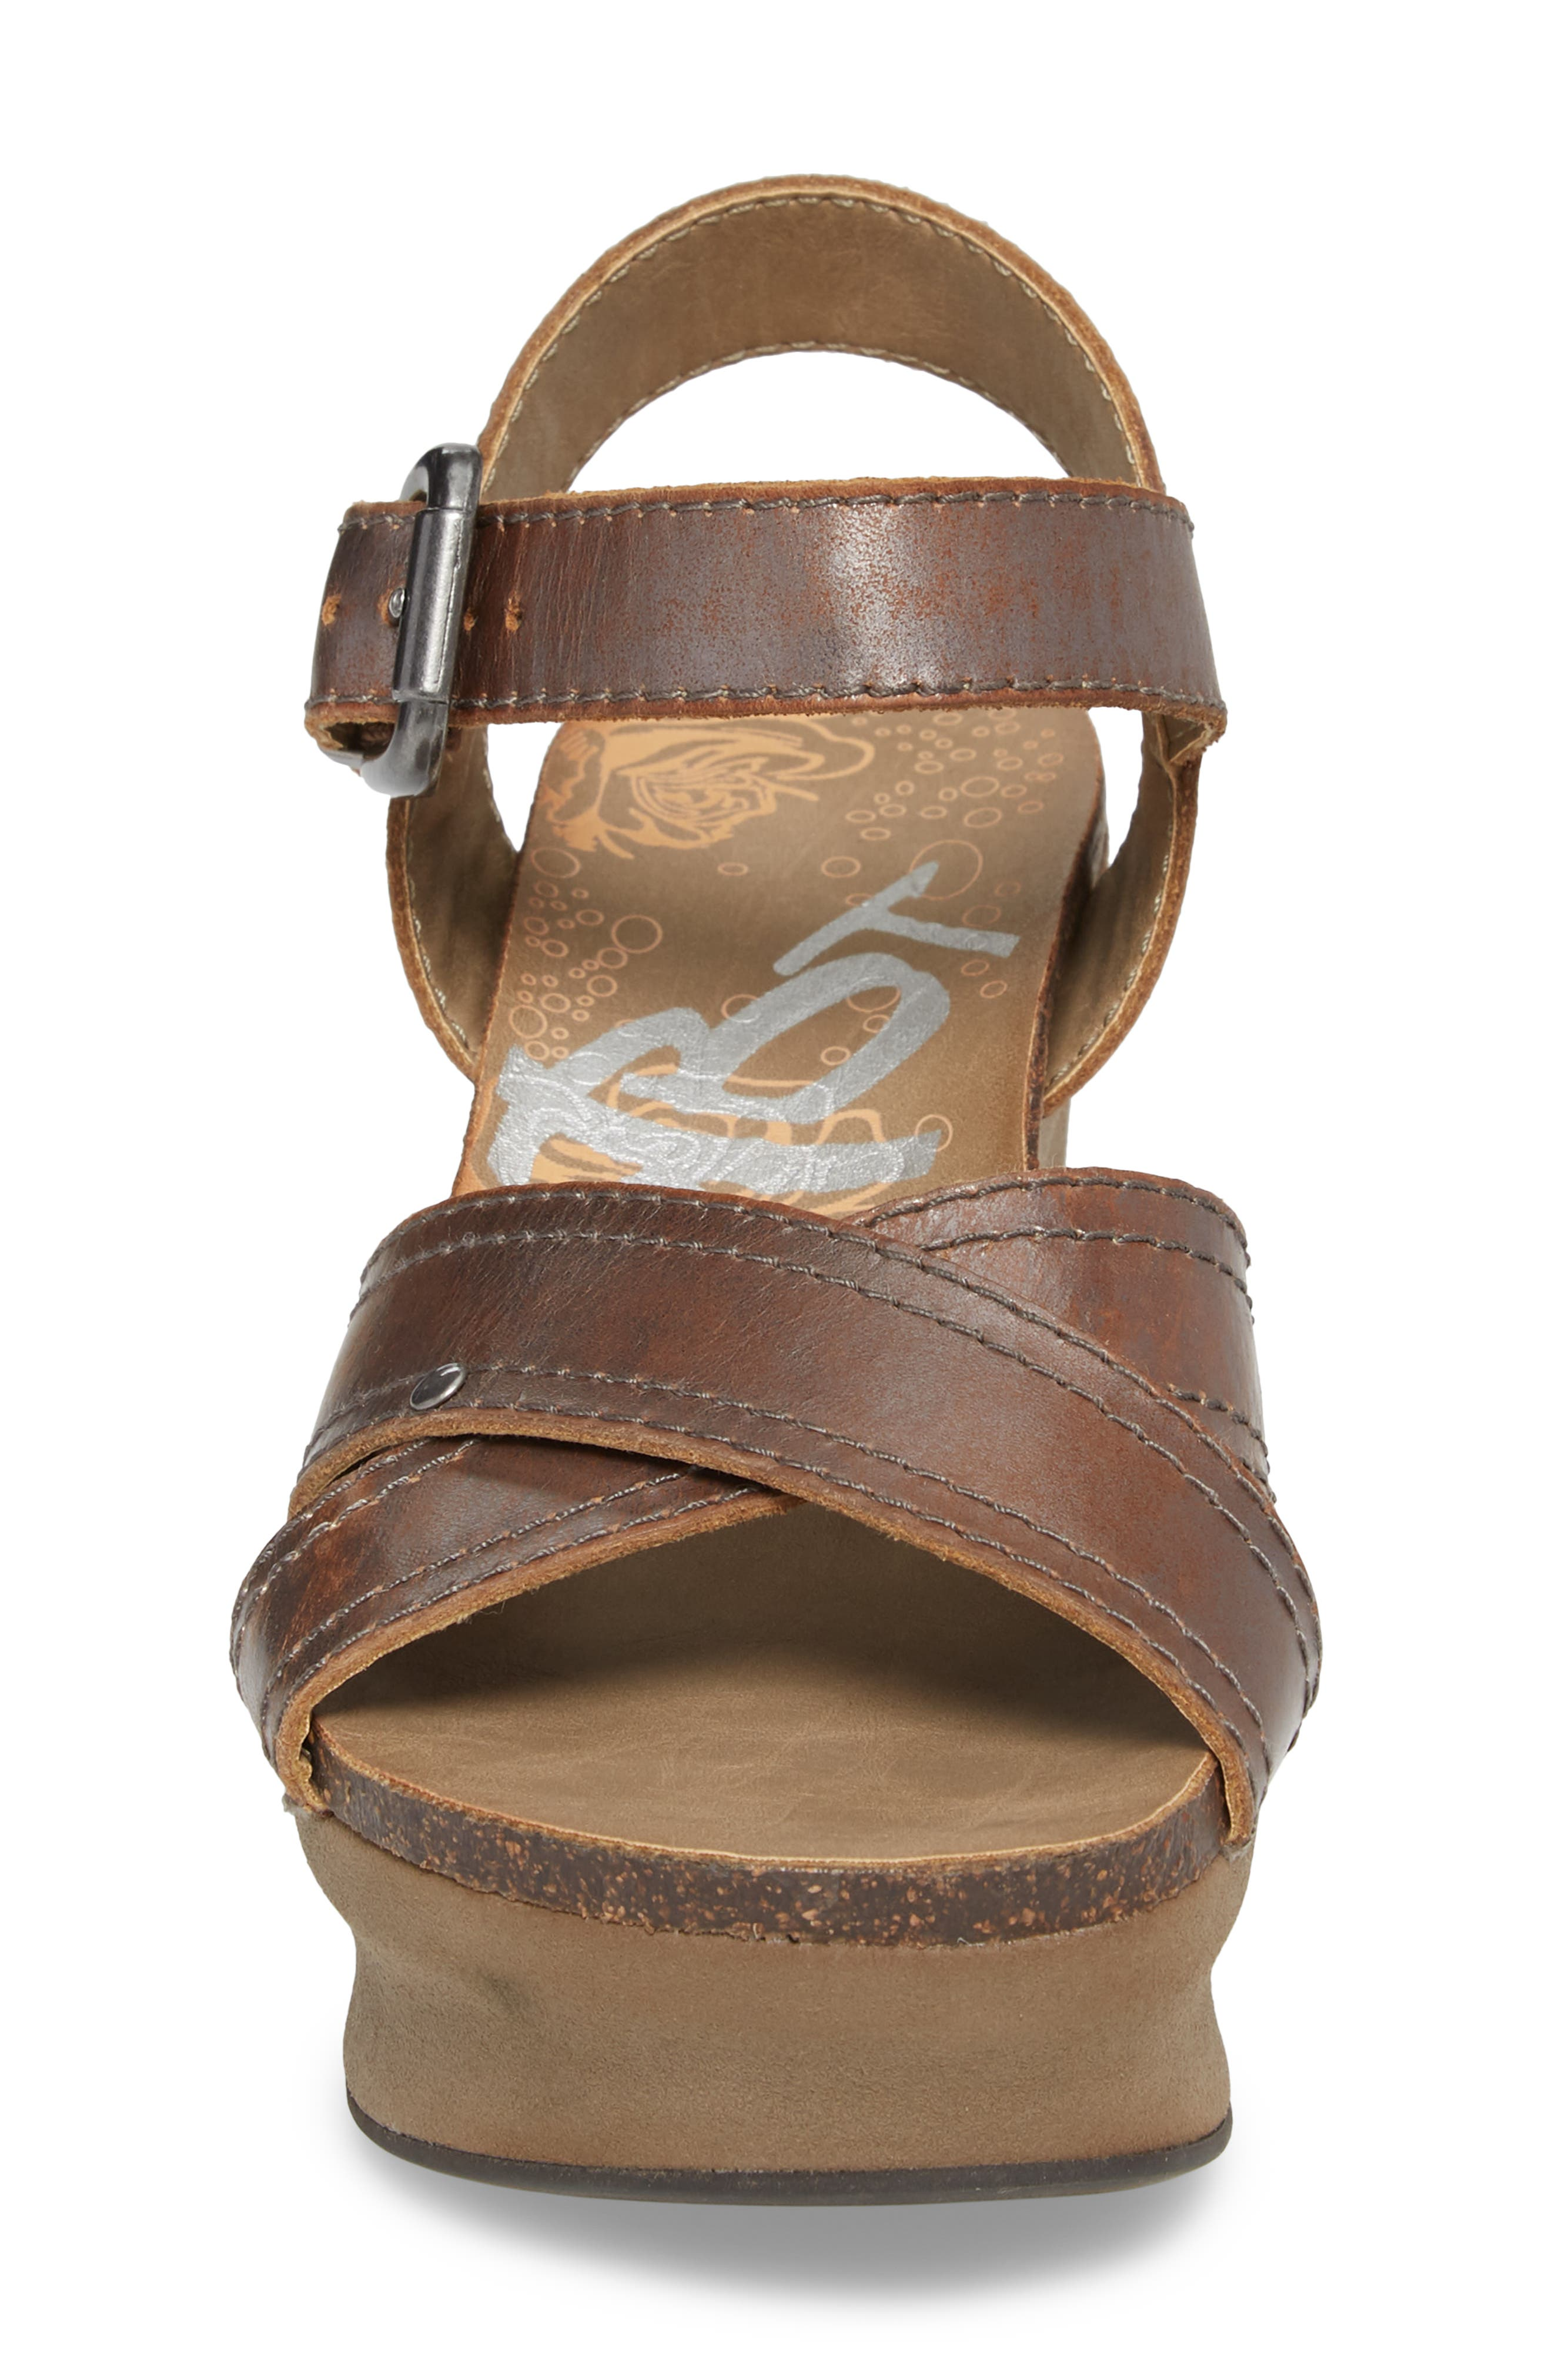 Bee Cave Wedge Sandal,                             Alternate thumbnail 4, color,                             Pewter Leather